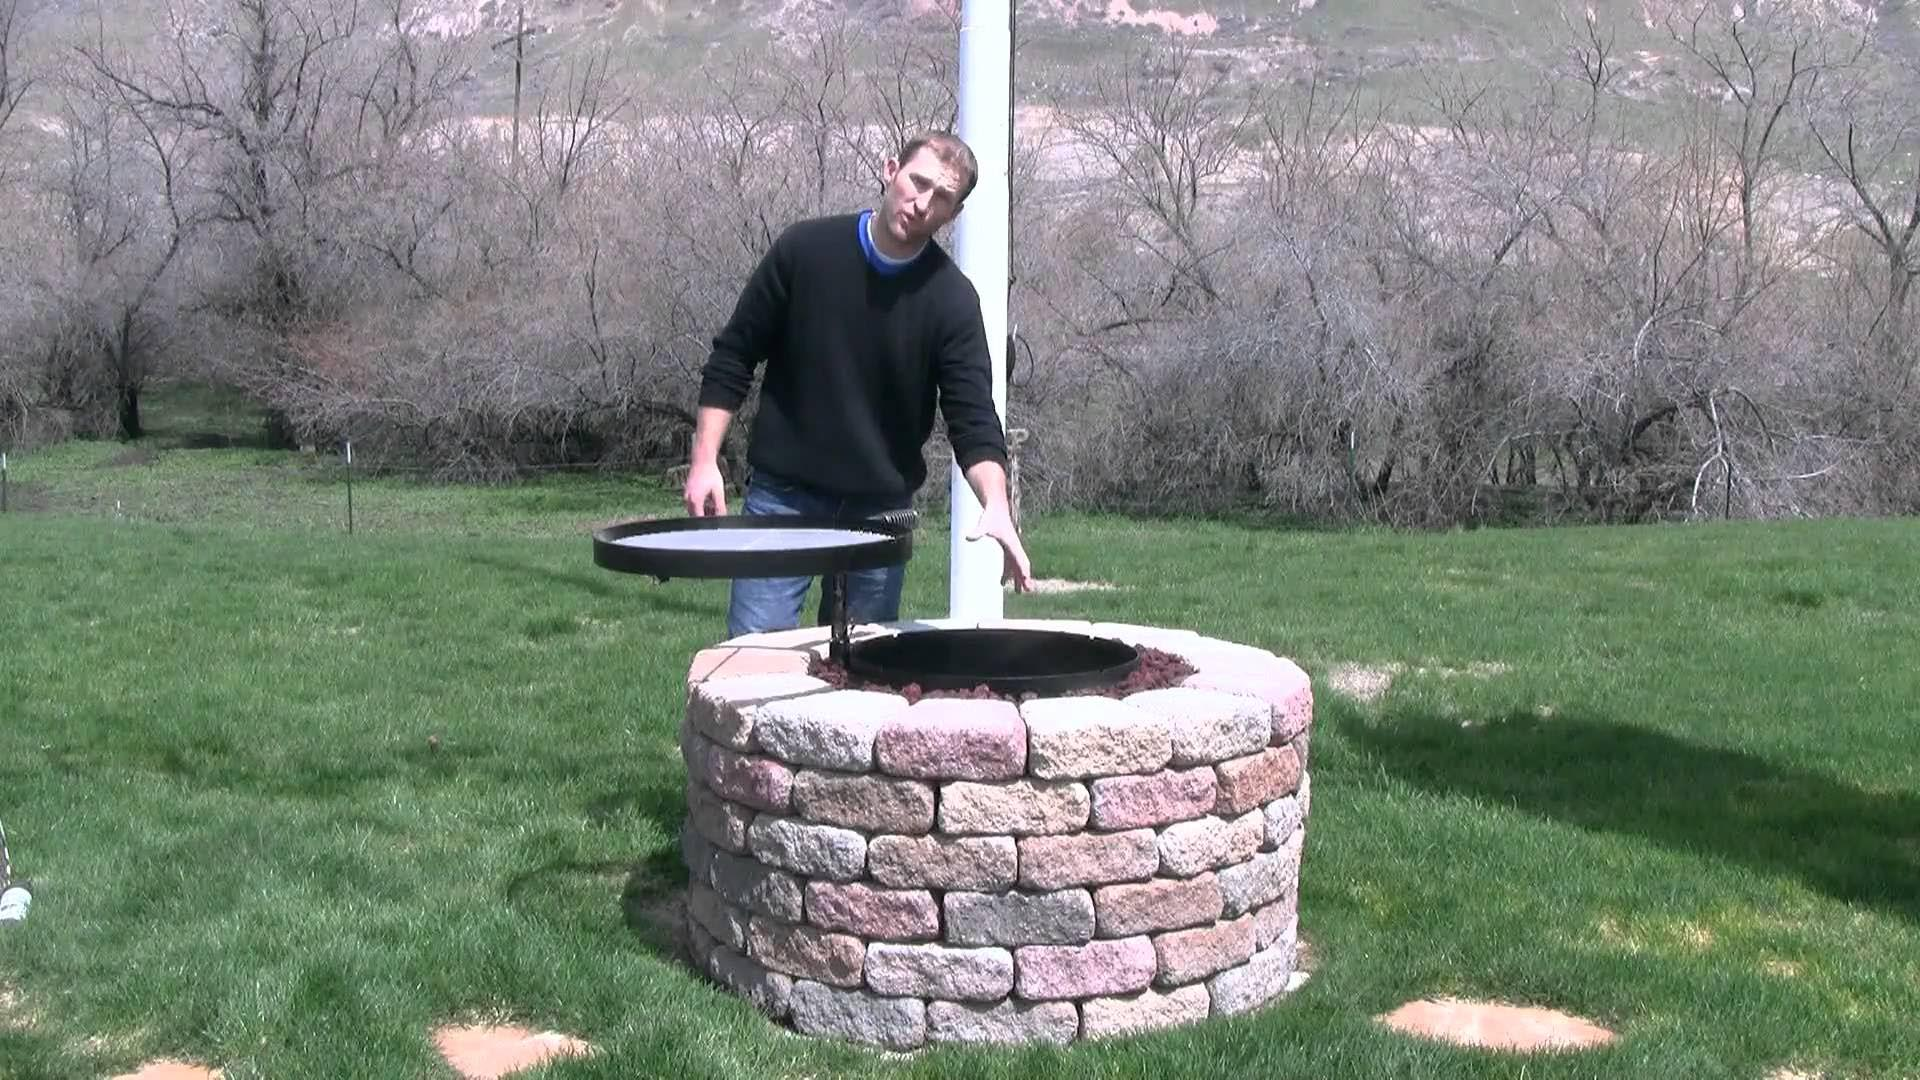 Diy outdoor fire pit grill fire pit design ideas for Easy diy fire pit with grill